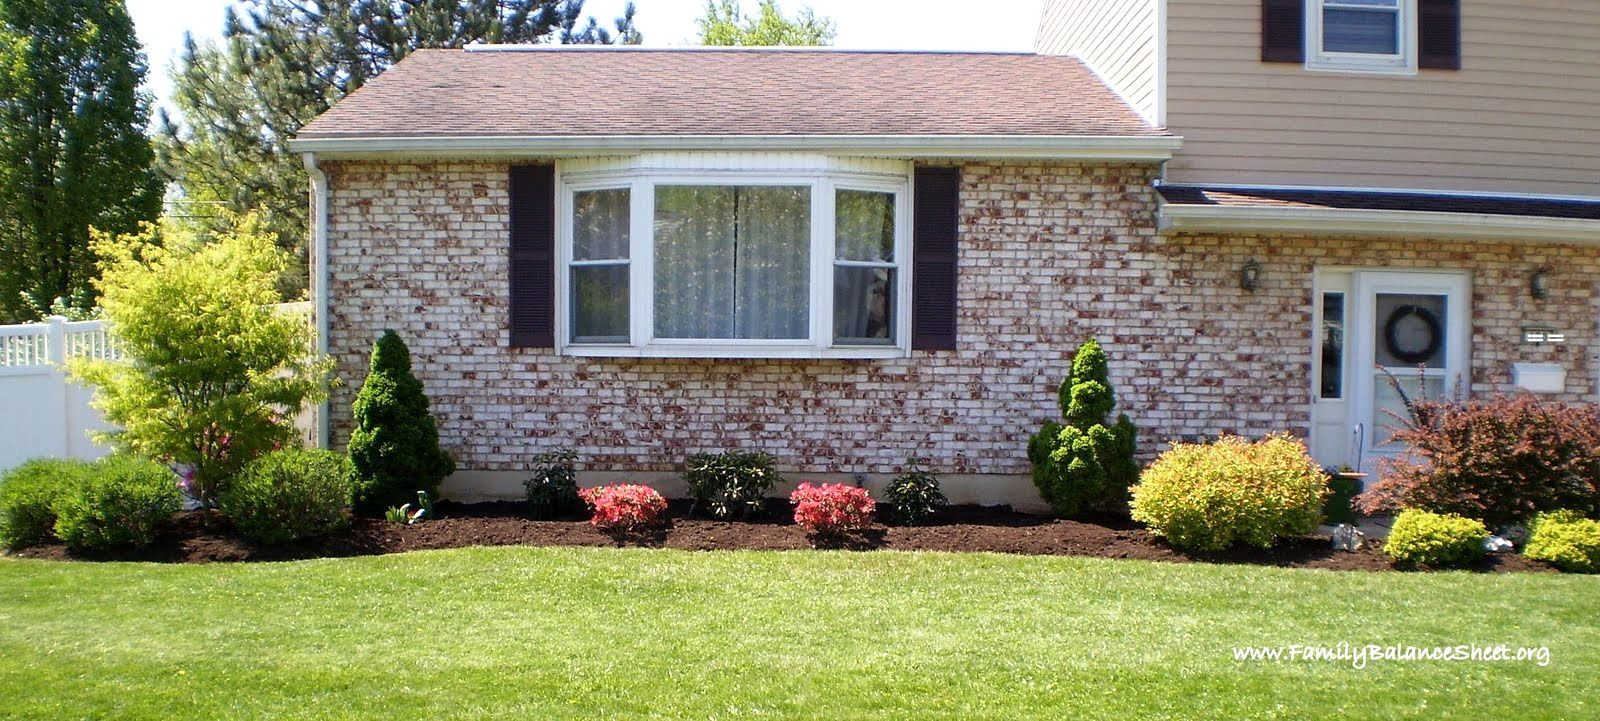 Landscaping ideas front yard ranch style home front yard for Small front yard landscaping ideas